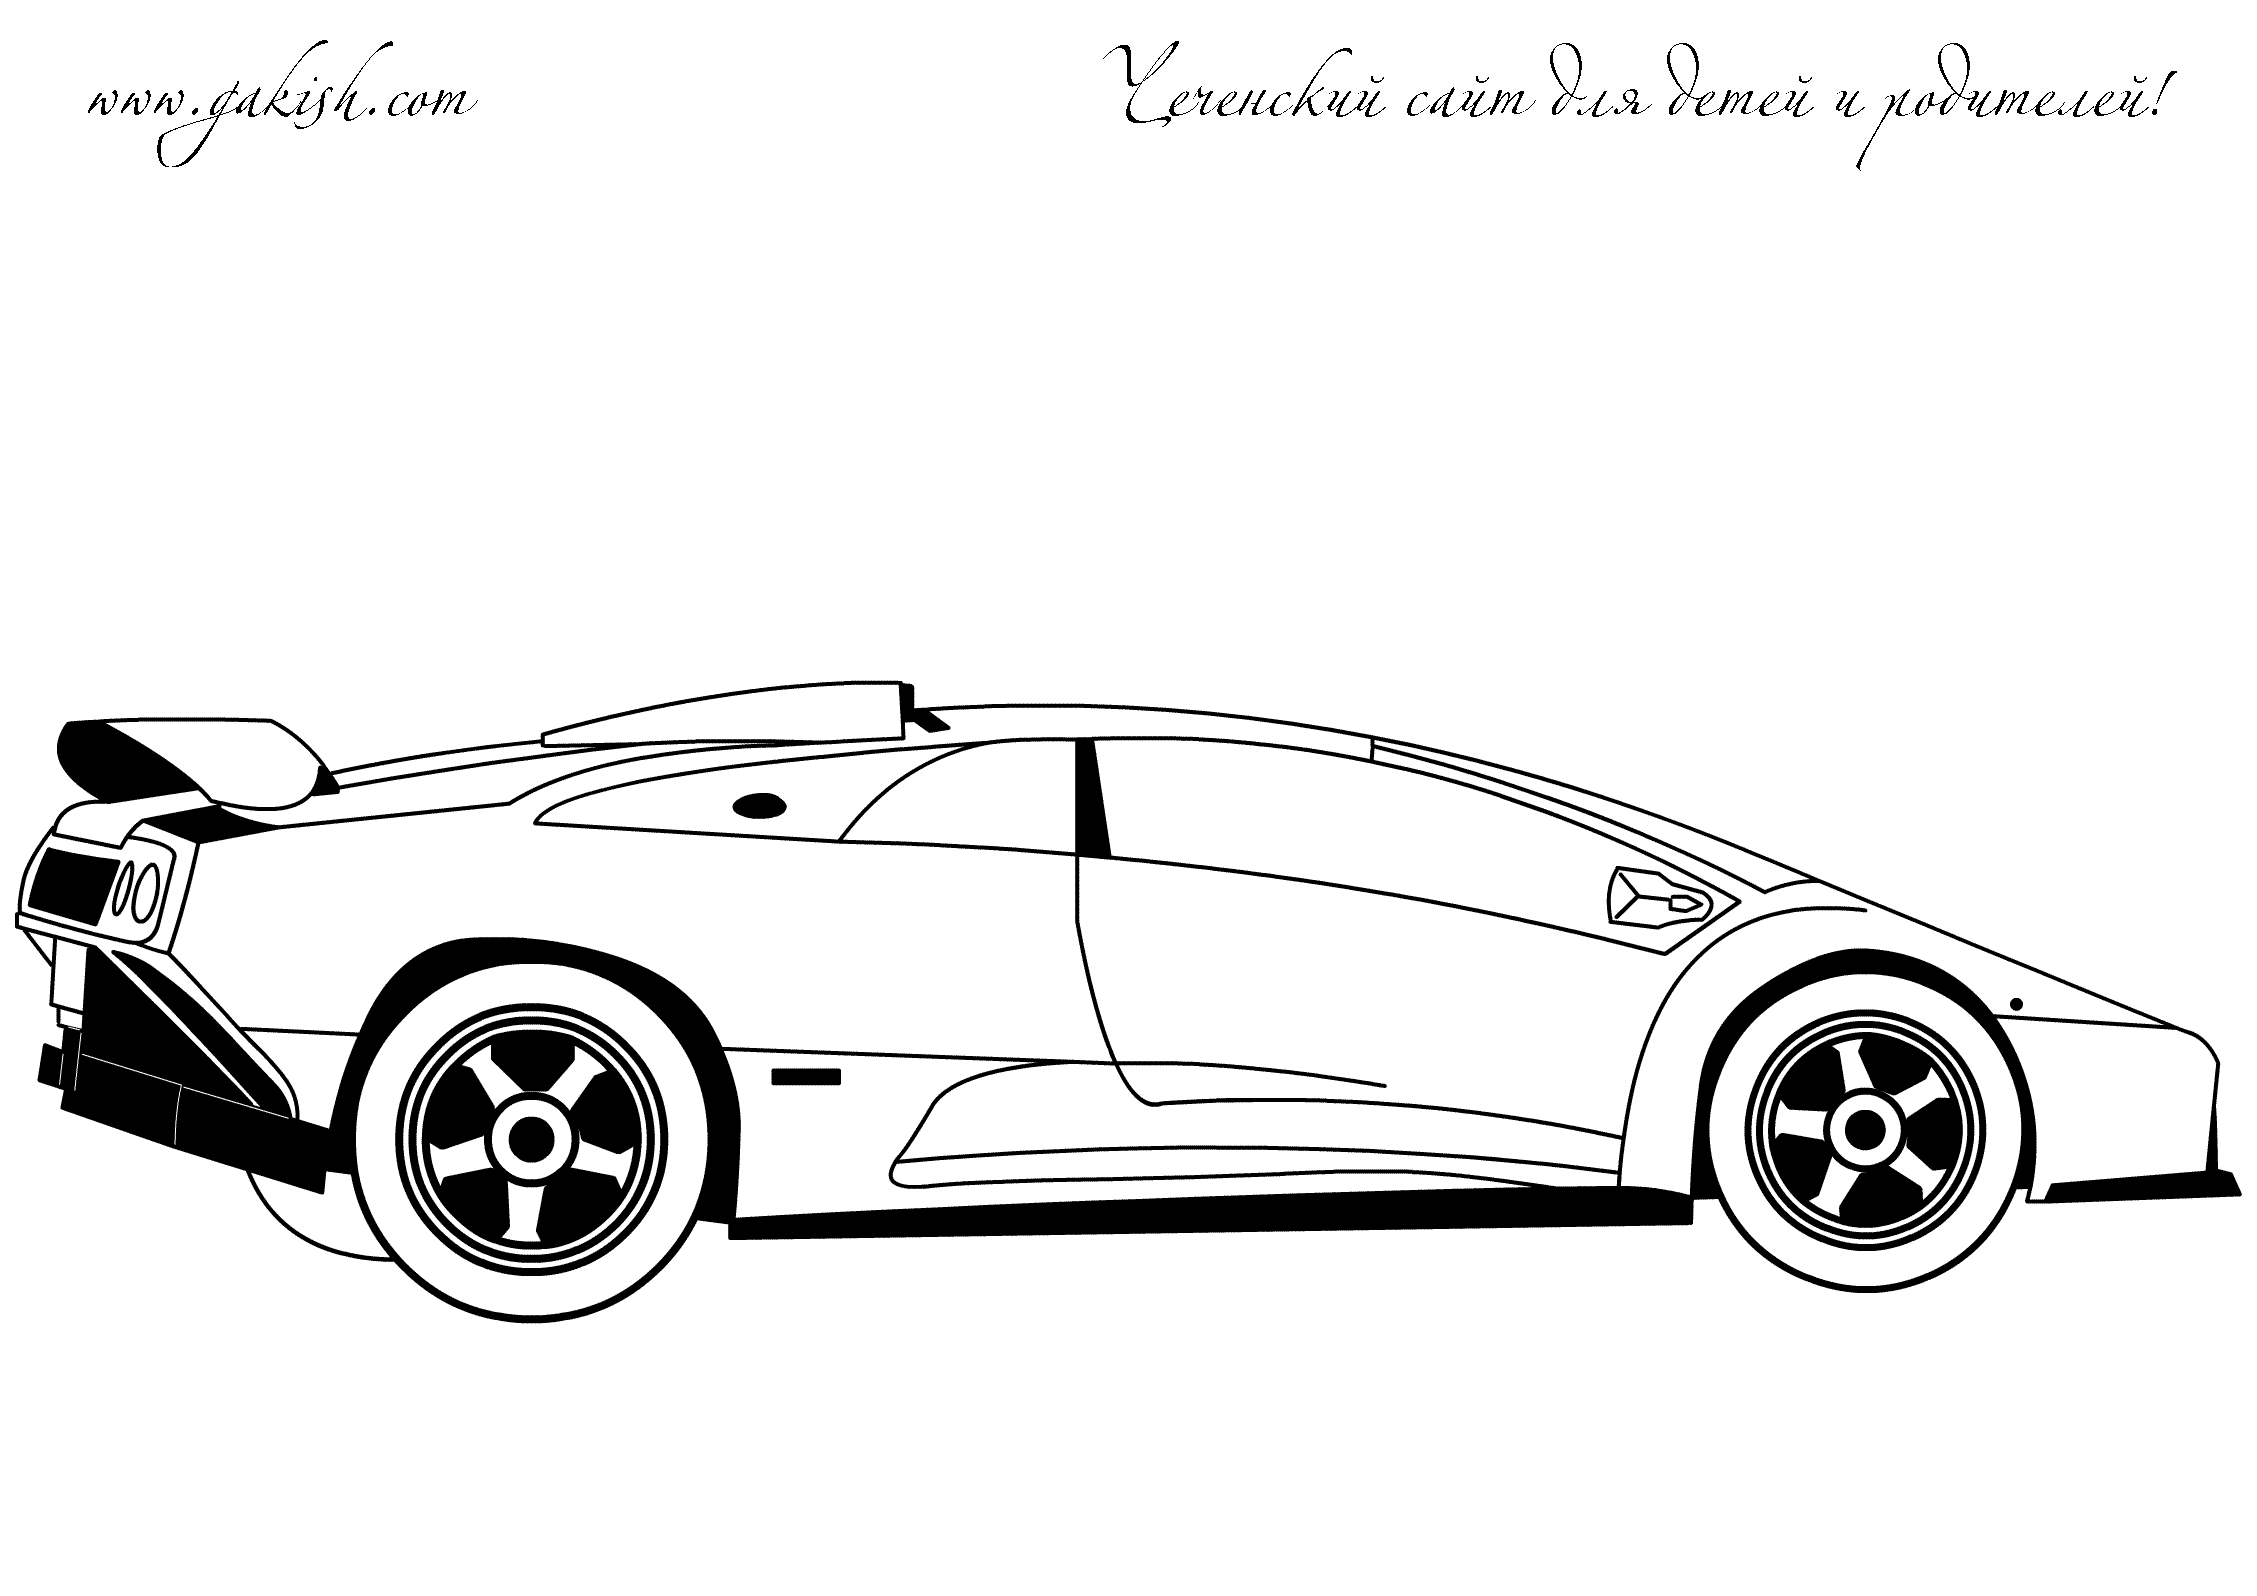 gallardo coloring pages - photo#20